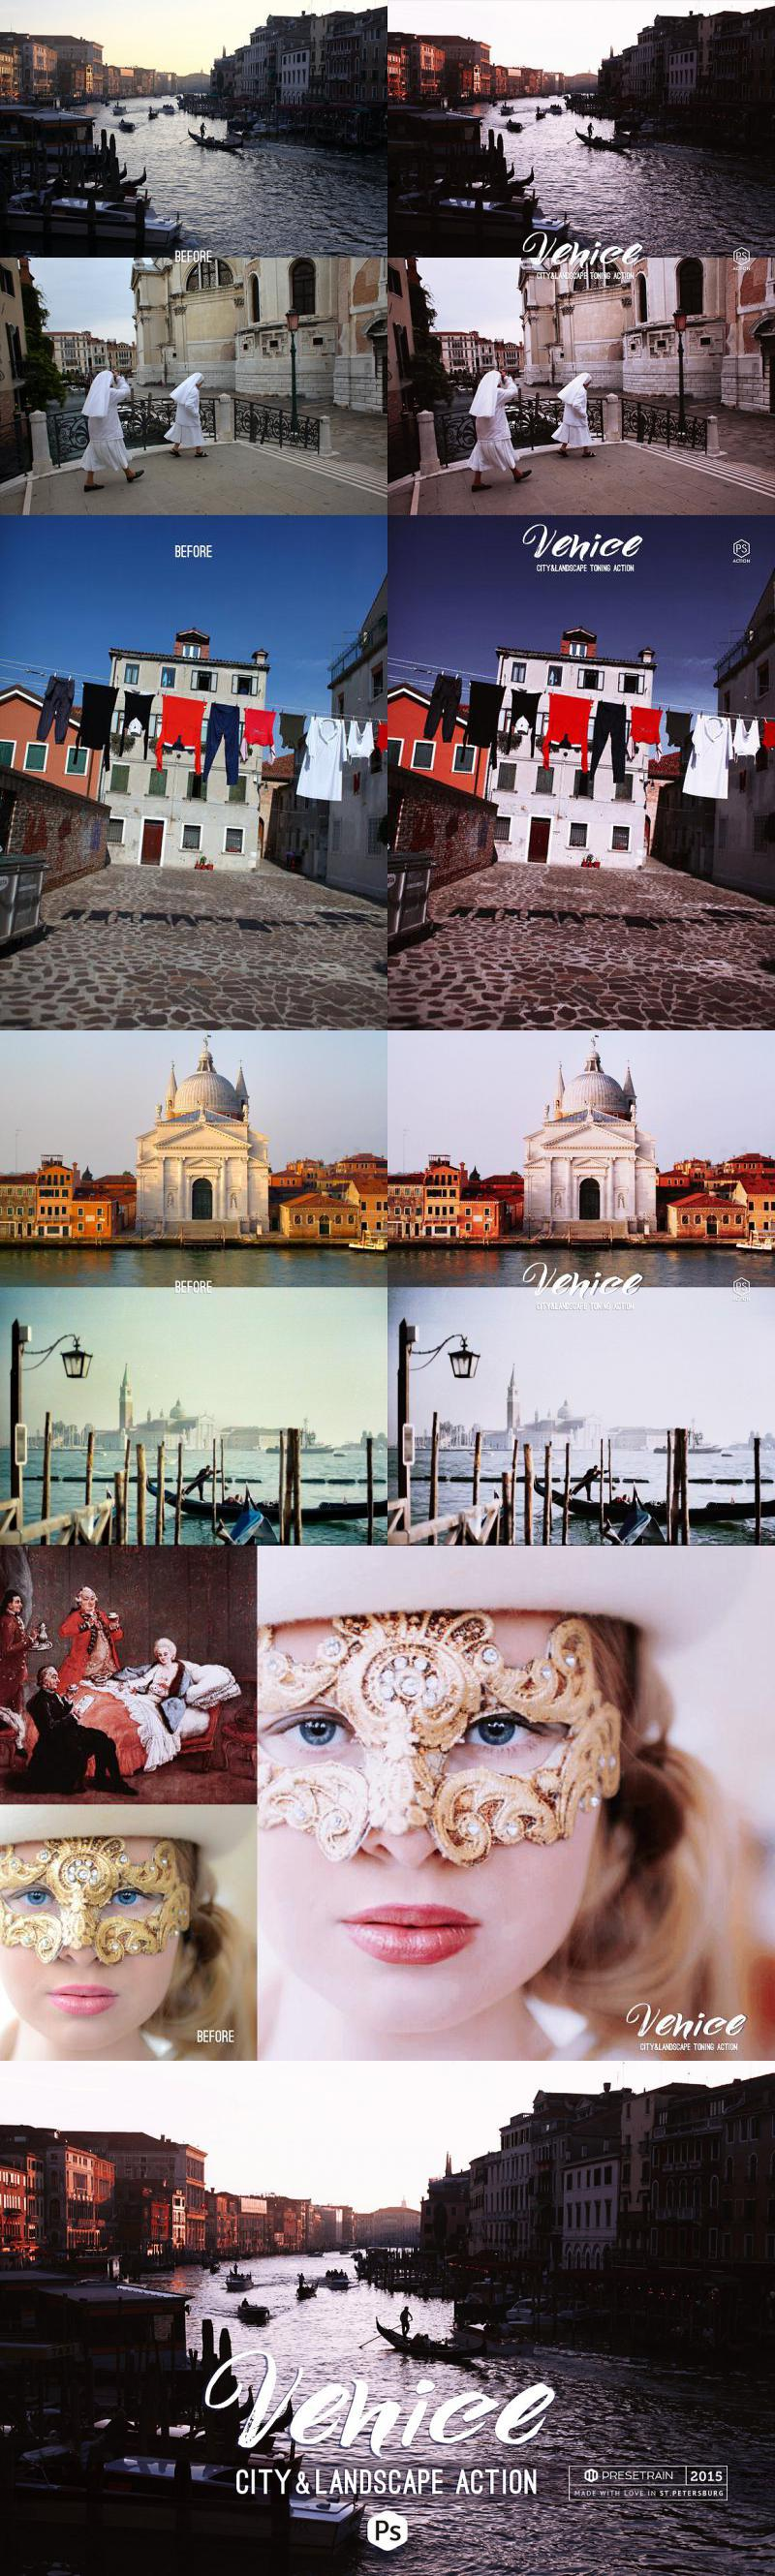 Venice Photoshop Action